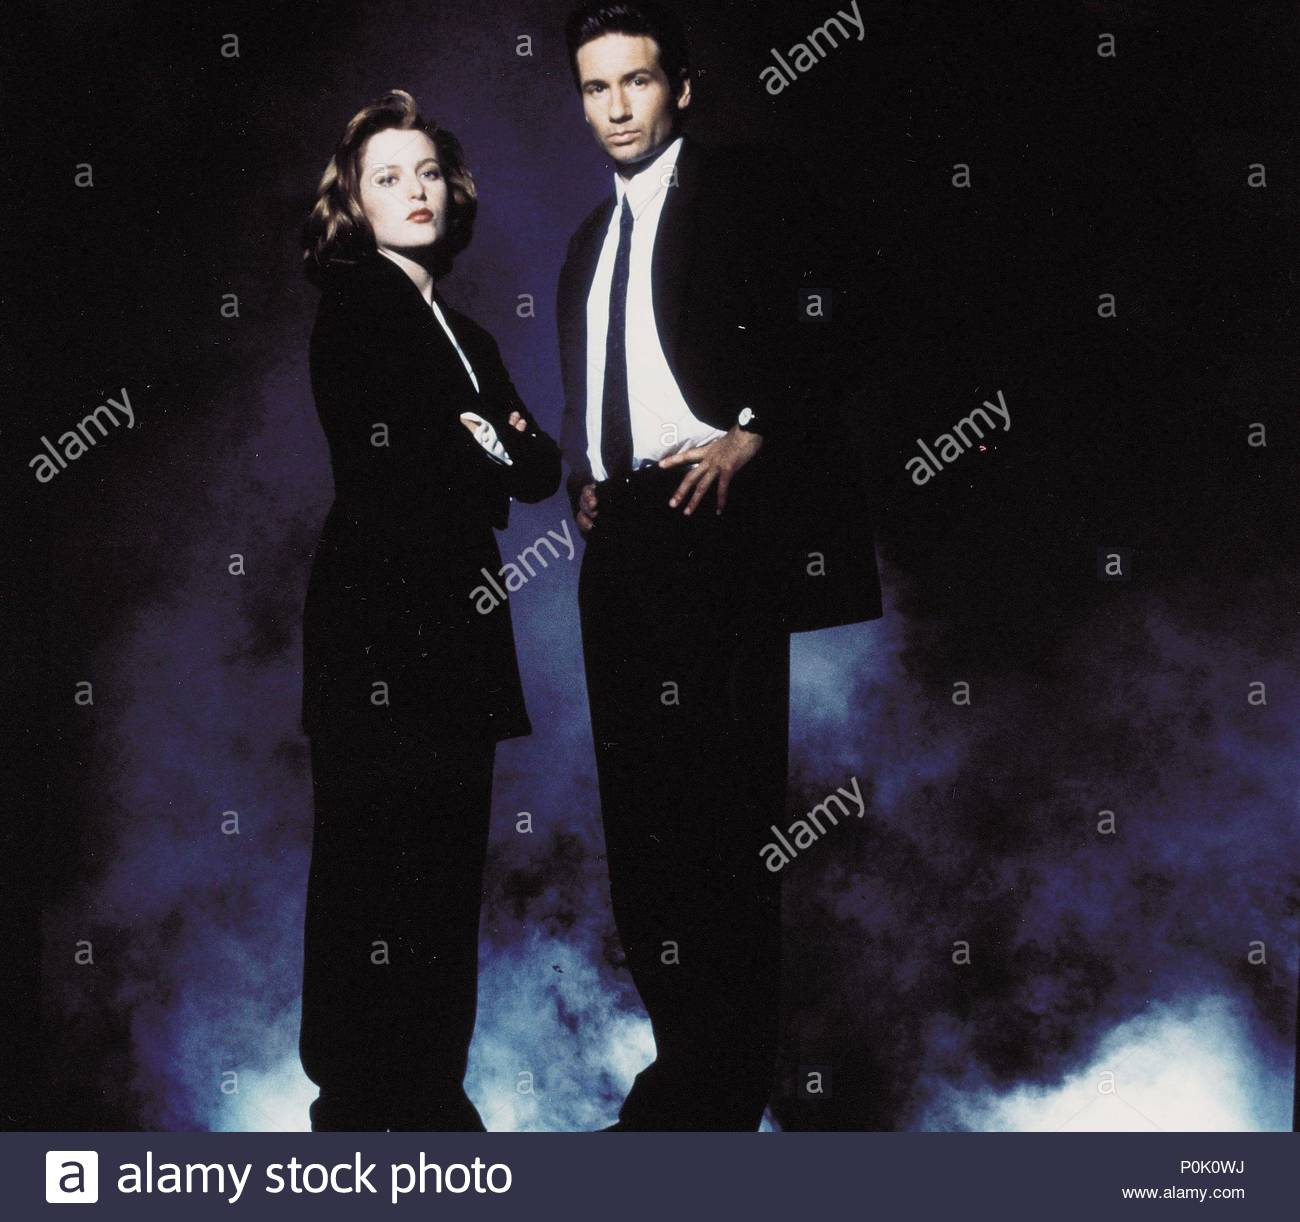 Original Film Title: THE X FILES.  English Title: THE X FILES.  Film Director: CHRIS CARTER; ROB BOWMAN; DAVID NUTTER.  Year: 1993.  Stars: DAVID DUCHOVNY; GILLIAN ANDERSON. Credit: FOX FILMS / Album - Stock Image